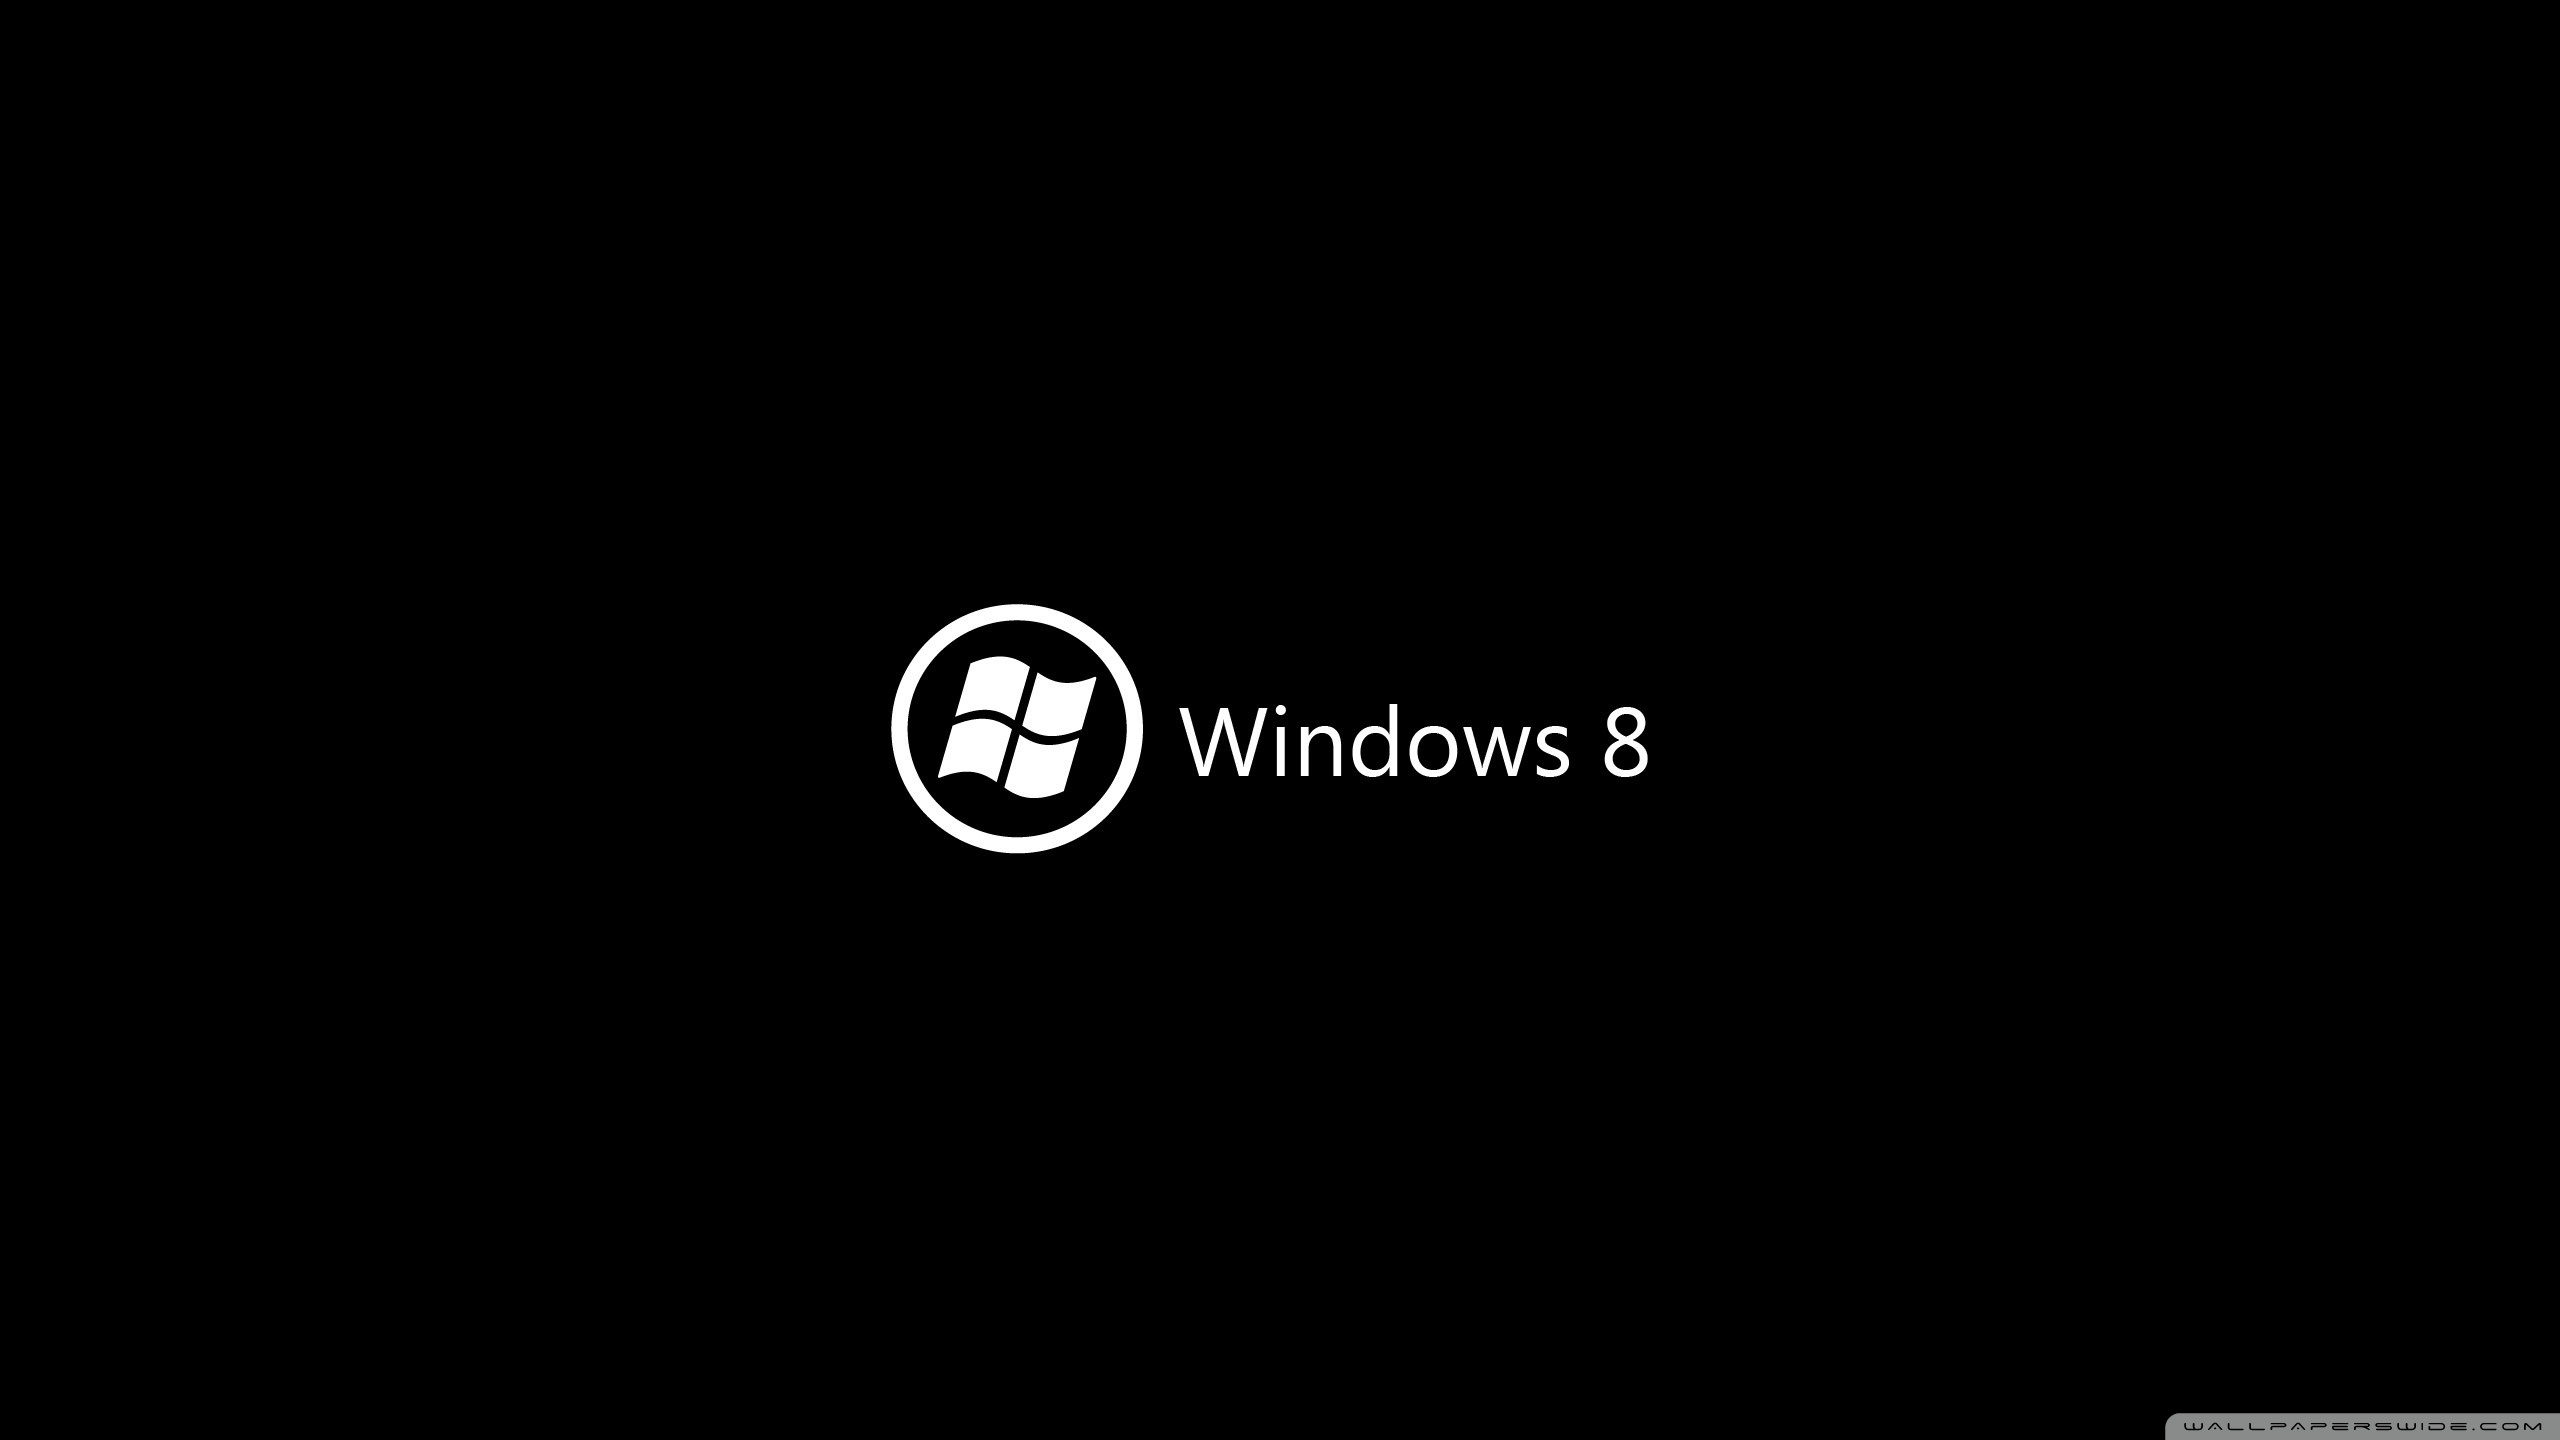 windows 8 on black ❤ 4k hd desktop wallpaper for 4k ultra hd tv